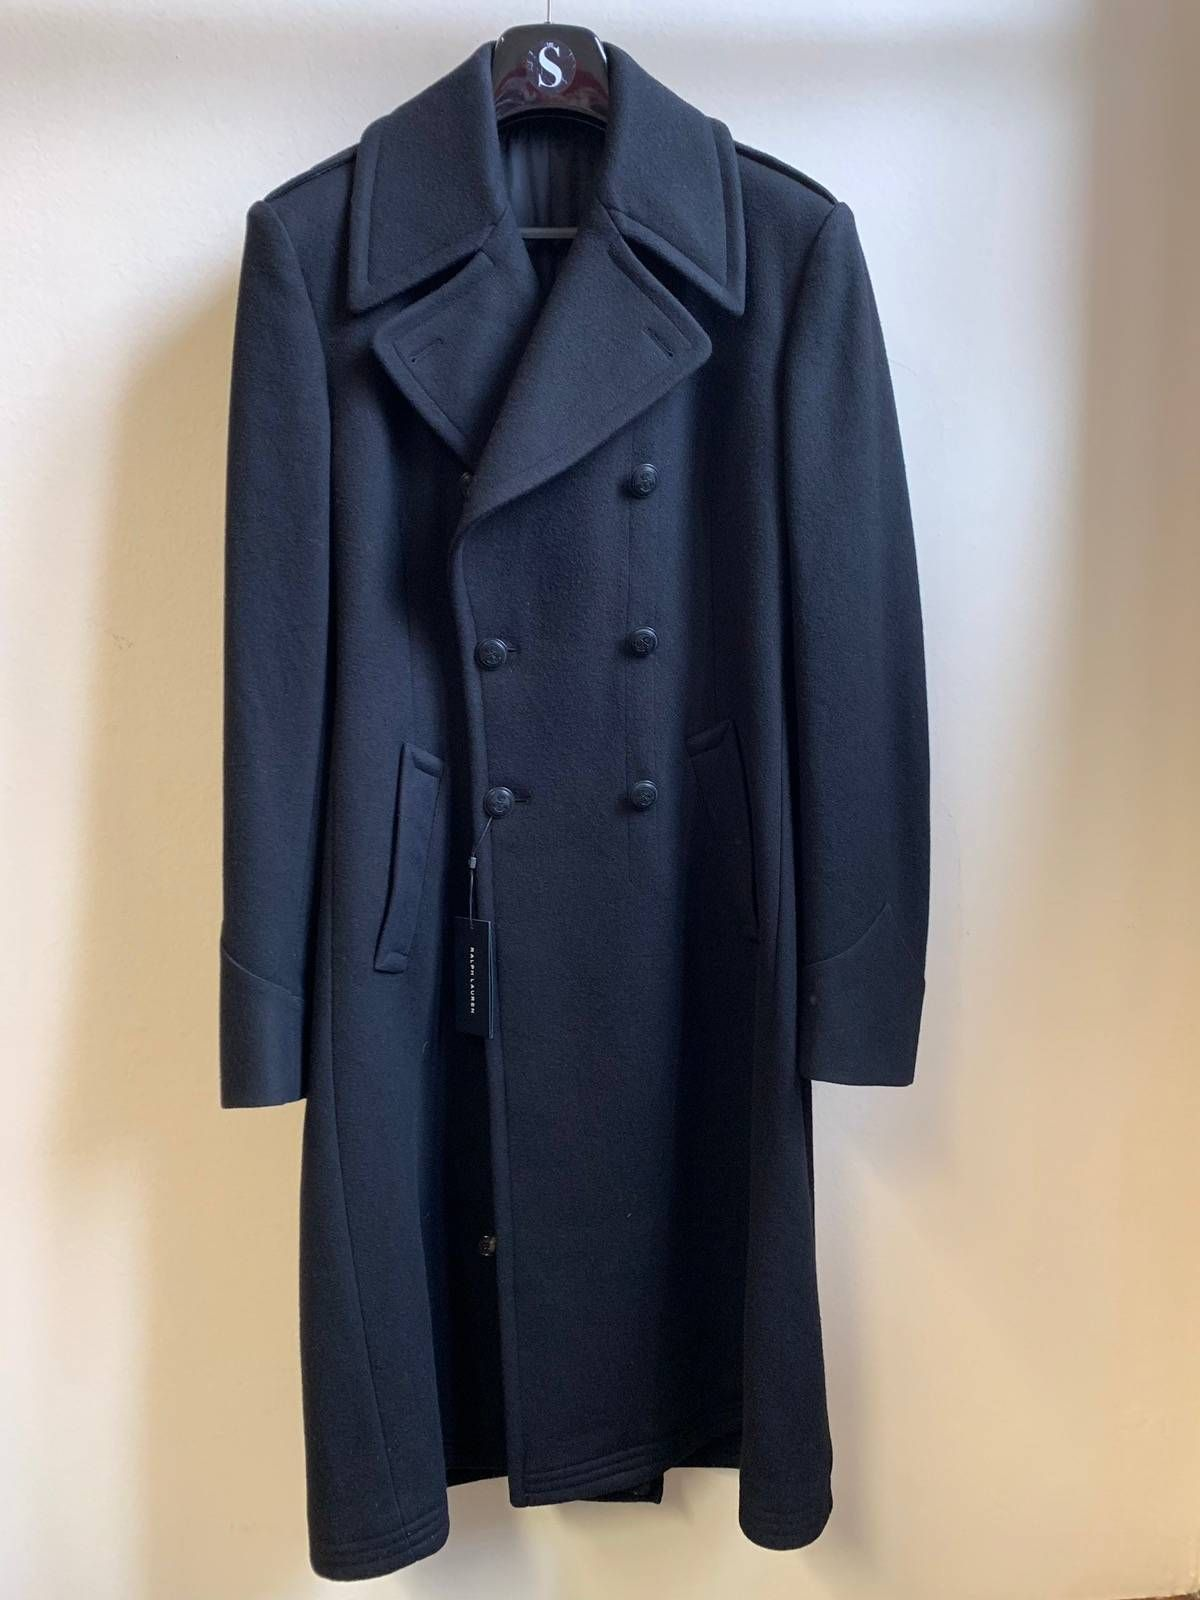 b35c9e22 Buy Polo Ralph Lauren Double-Breasted Black Long Coat, Size: L,  Description: Polo Ralph Lauren black label double breasted black long coat  size 52 brand new ...